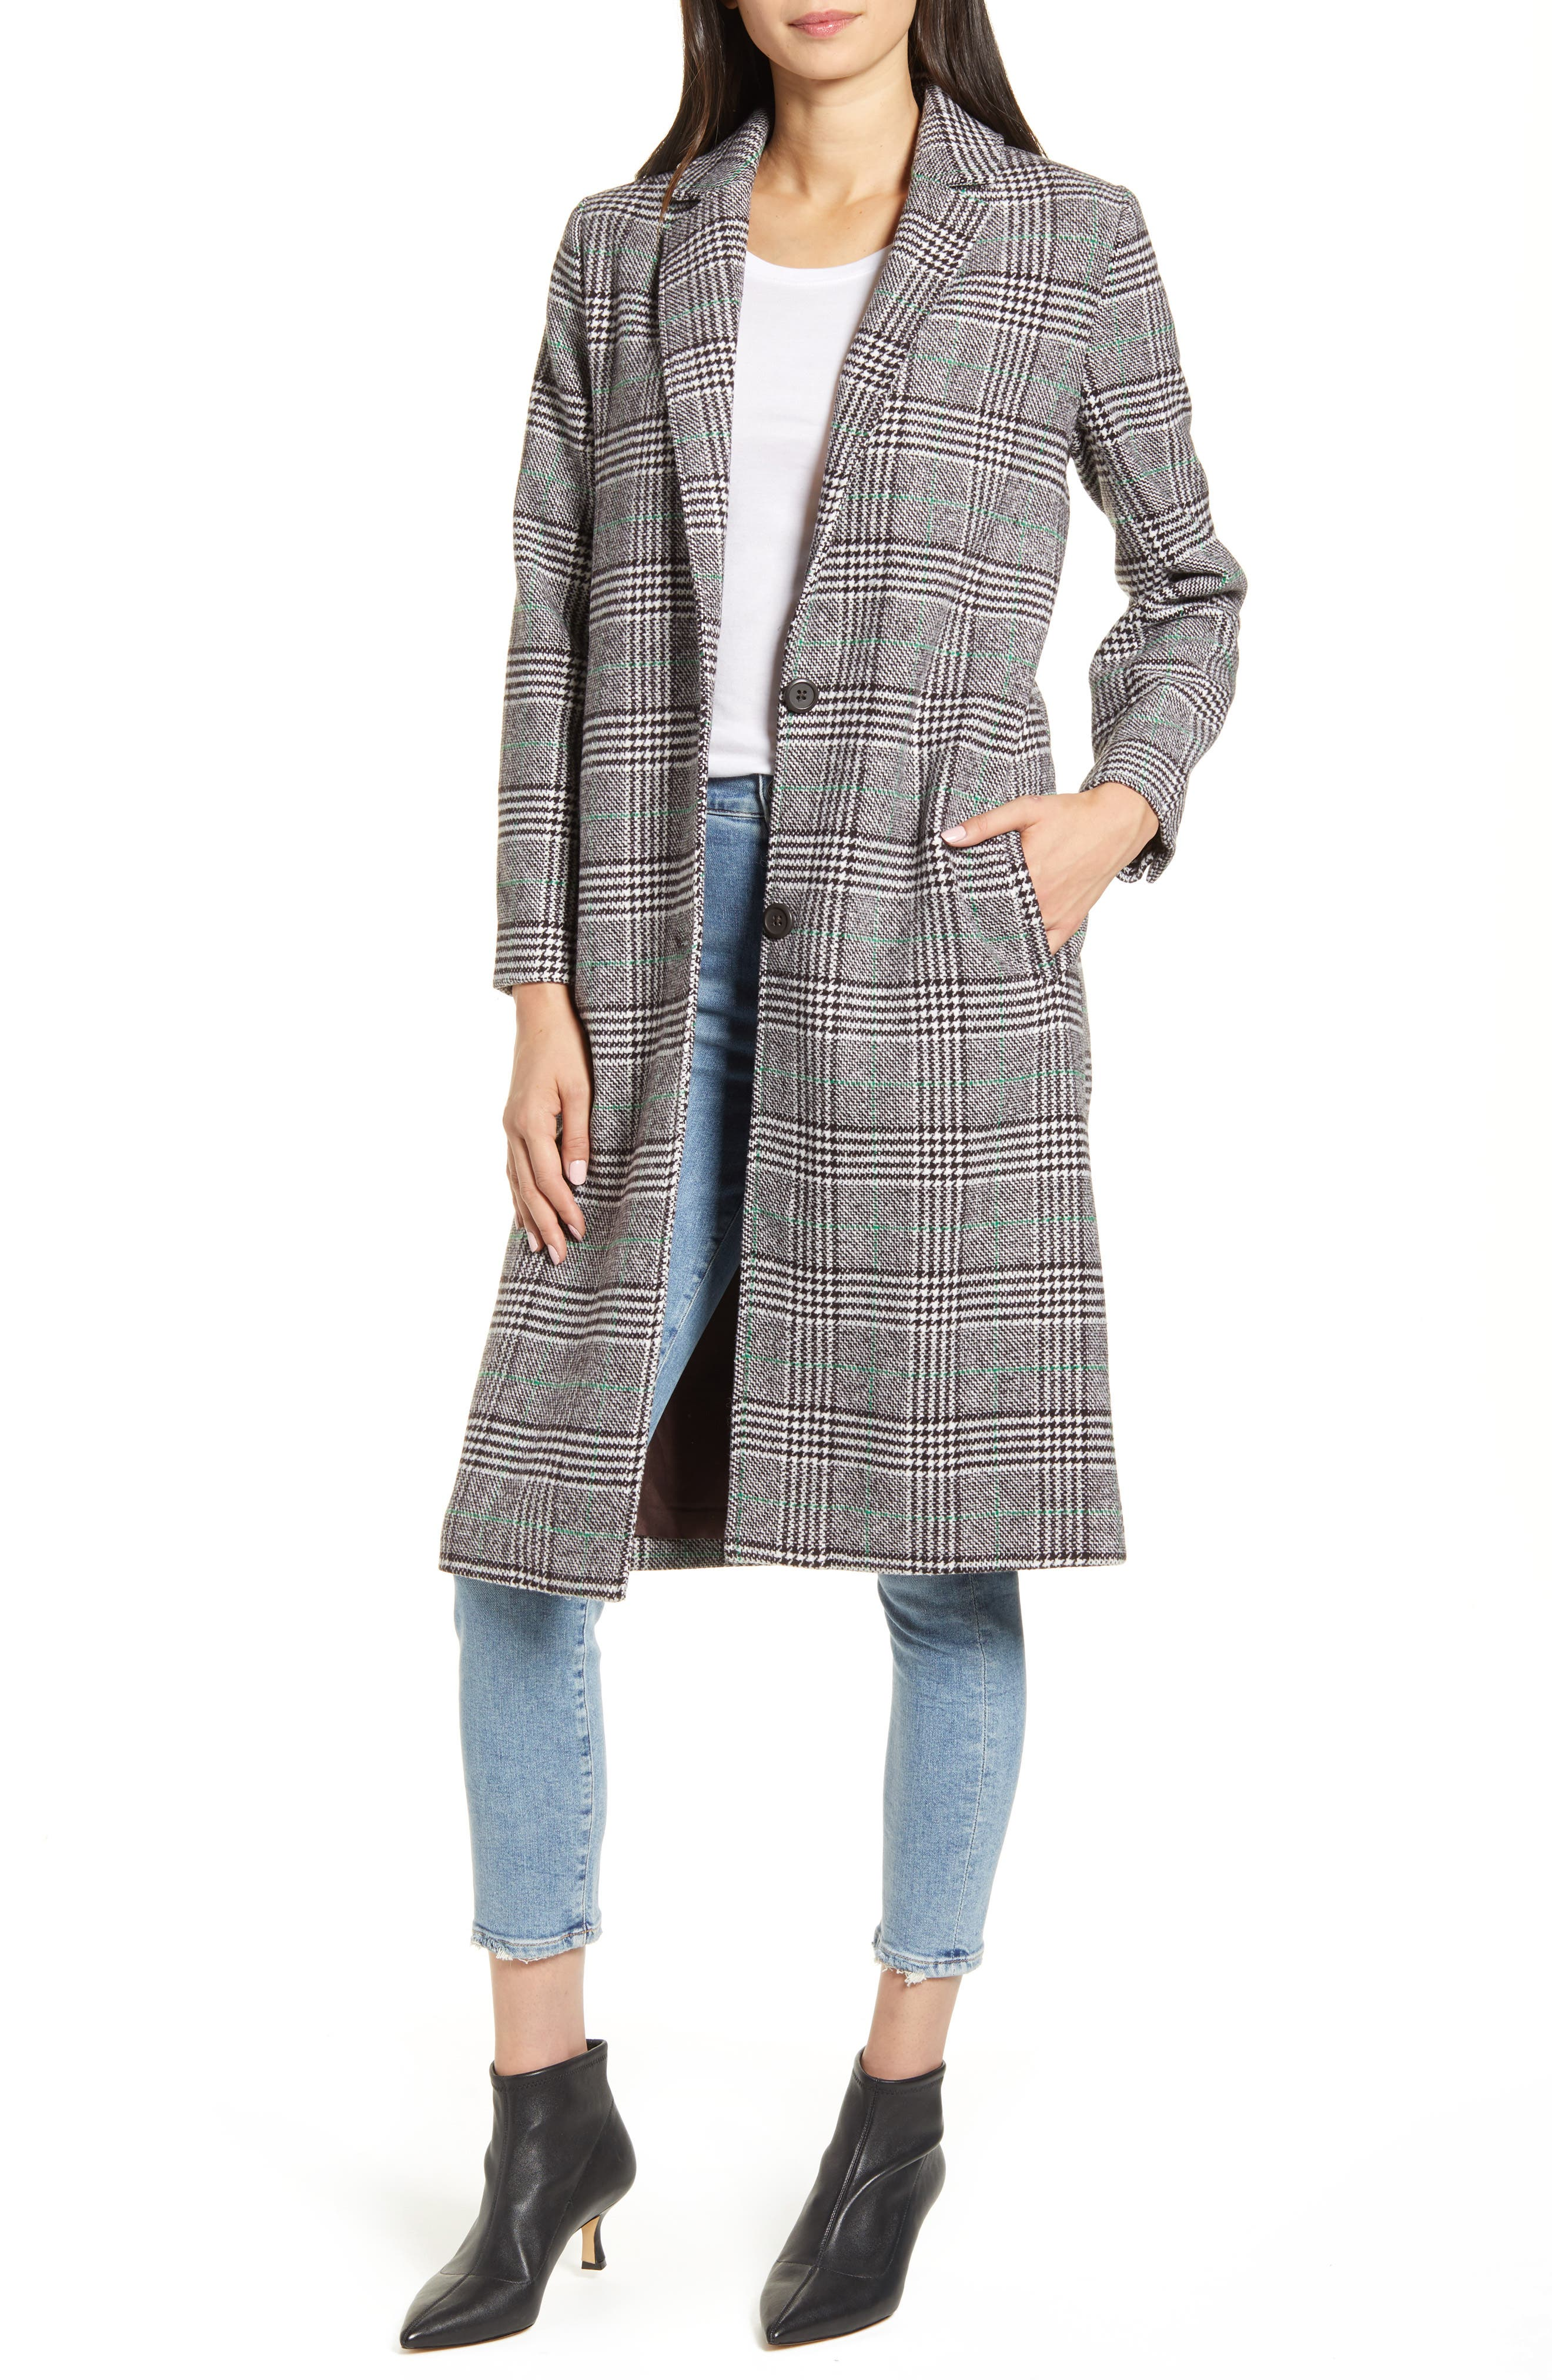 Vintage Coats & Jackets | Retro Coats and Jackets Womens Cupcakes And Cashmere Oxford Long Check Coat $188.00 AT vintagedancer.com